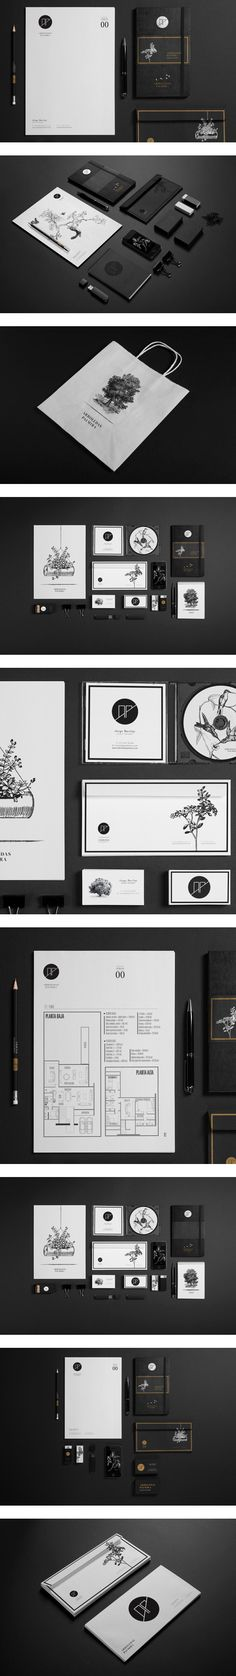 Arboledas Palmira by Diego Leyva, via Behance sustainable community identity packaging branding PD Coperate Design, Logo Design, Design Poster, Graphic Design Typography, Print Design, Corporate Identity Design, Brand Identity Design, Branding Agency, Business Branding